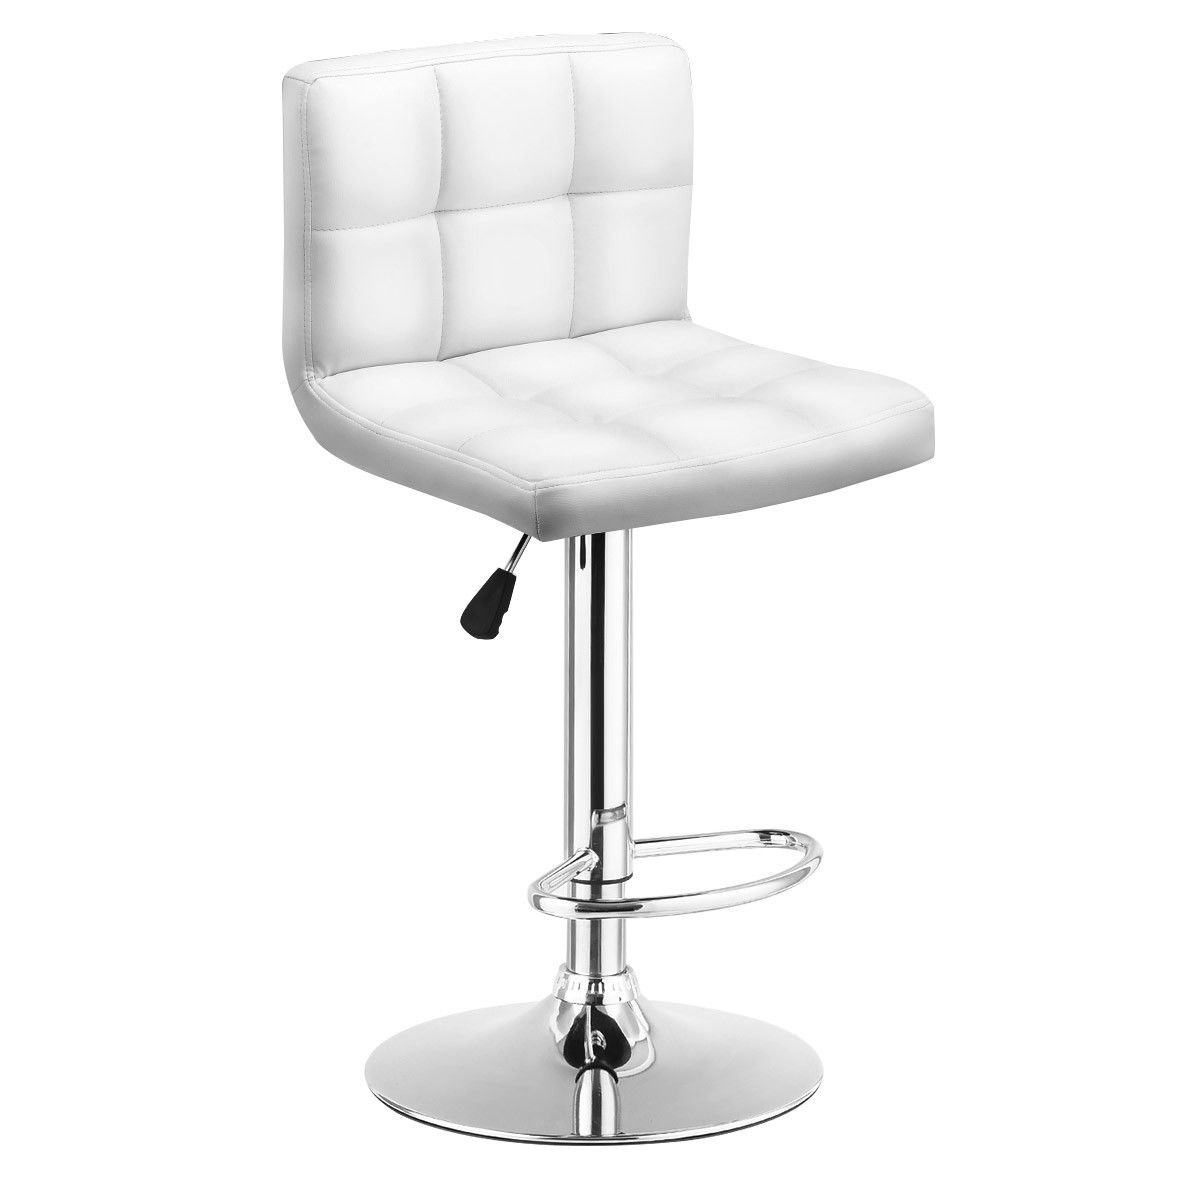 Costway 1 PC Bar Stool Swivel Adjustable PU Leather Bar Stools Bistro Pub Chair White by Costway